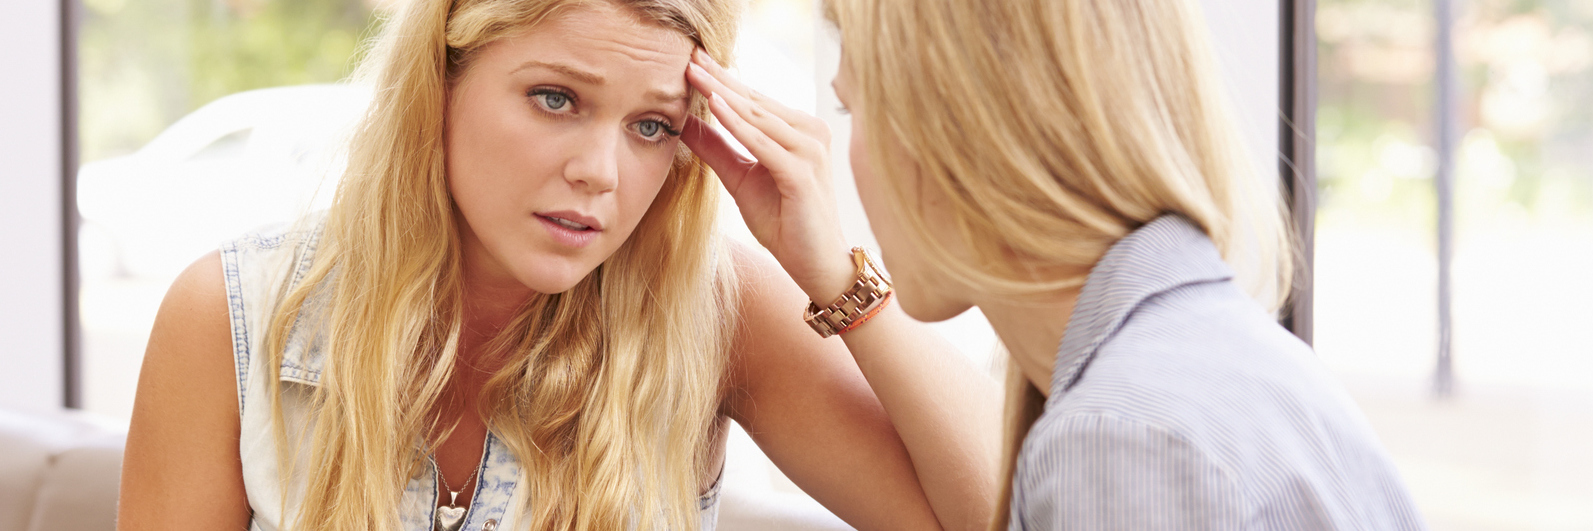 depressed college student talking to counselor of similar age